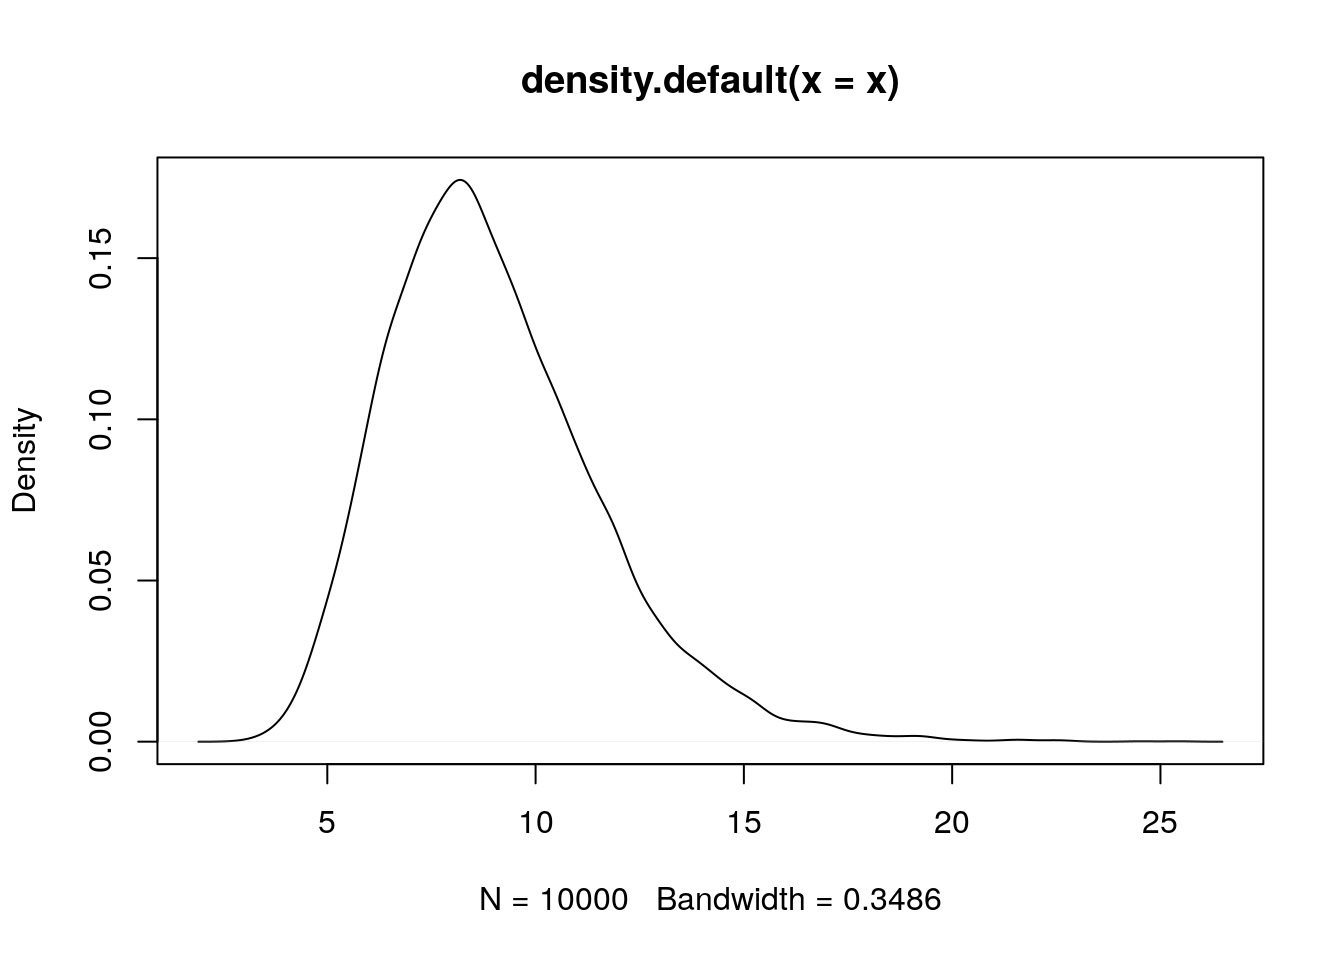 Log-normal distribution with meanlog = 2.159 and sdlog = 0.28.